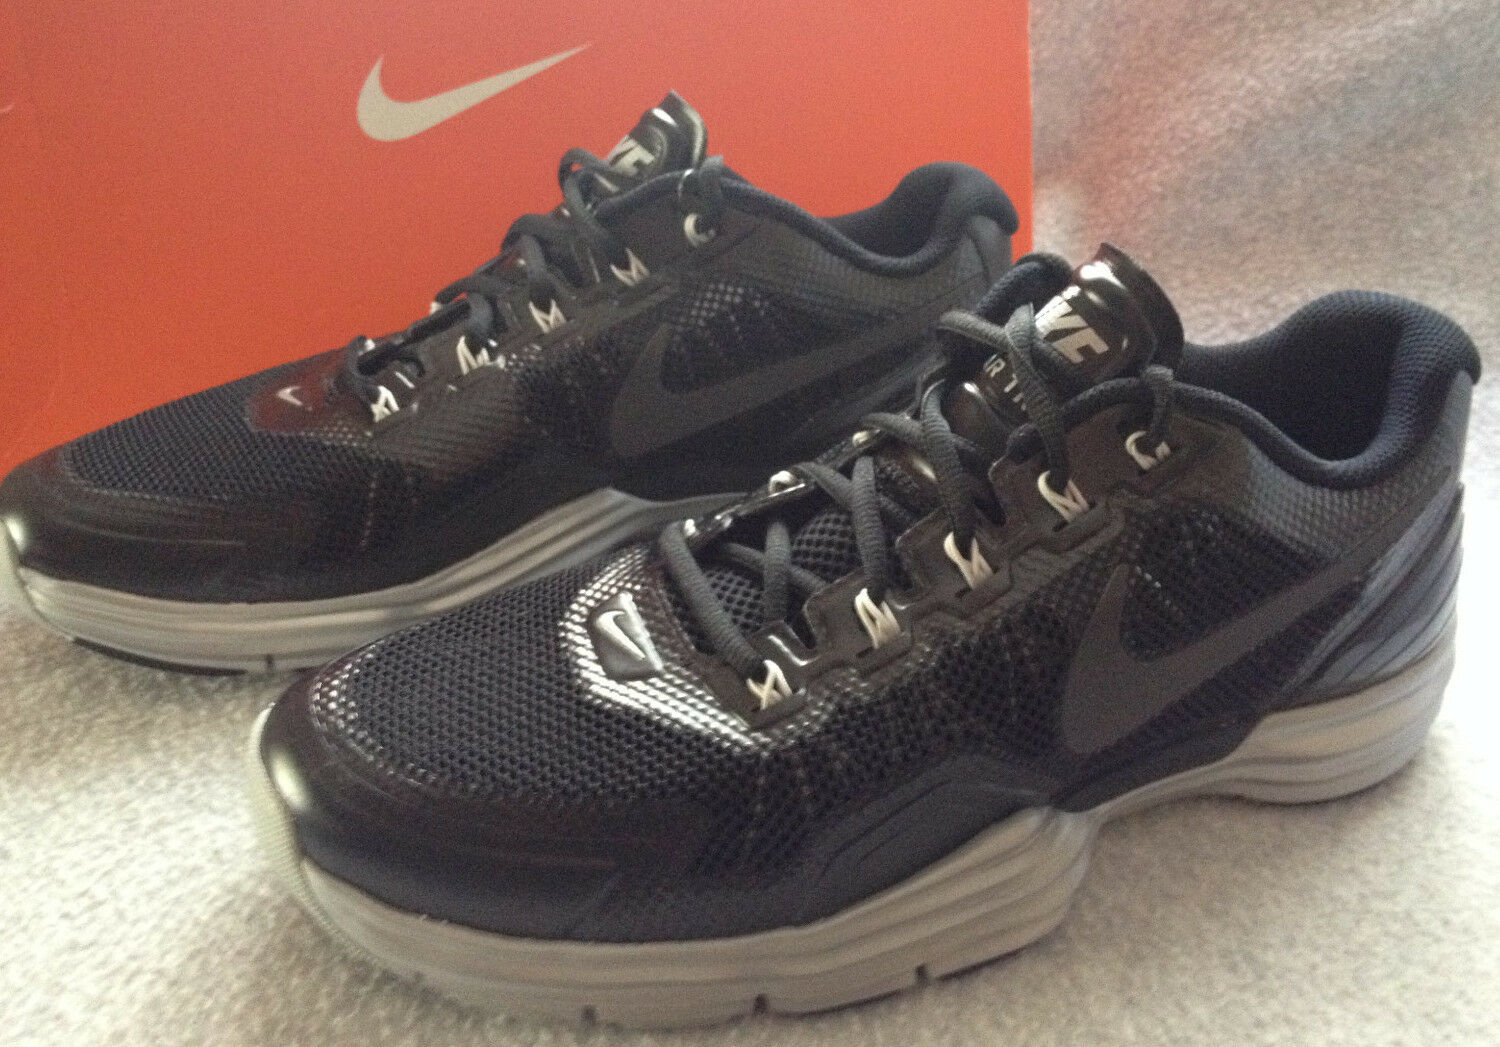 Nike Lunar TR1 529169-001 Chaussures Noir Training Running CrossFit Chaussures 529169-001  Hommes 9 Run new 07fdf9